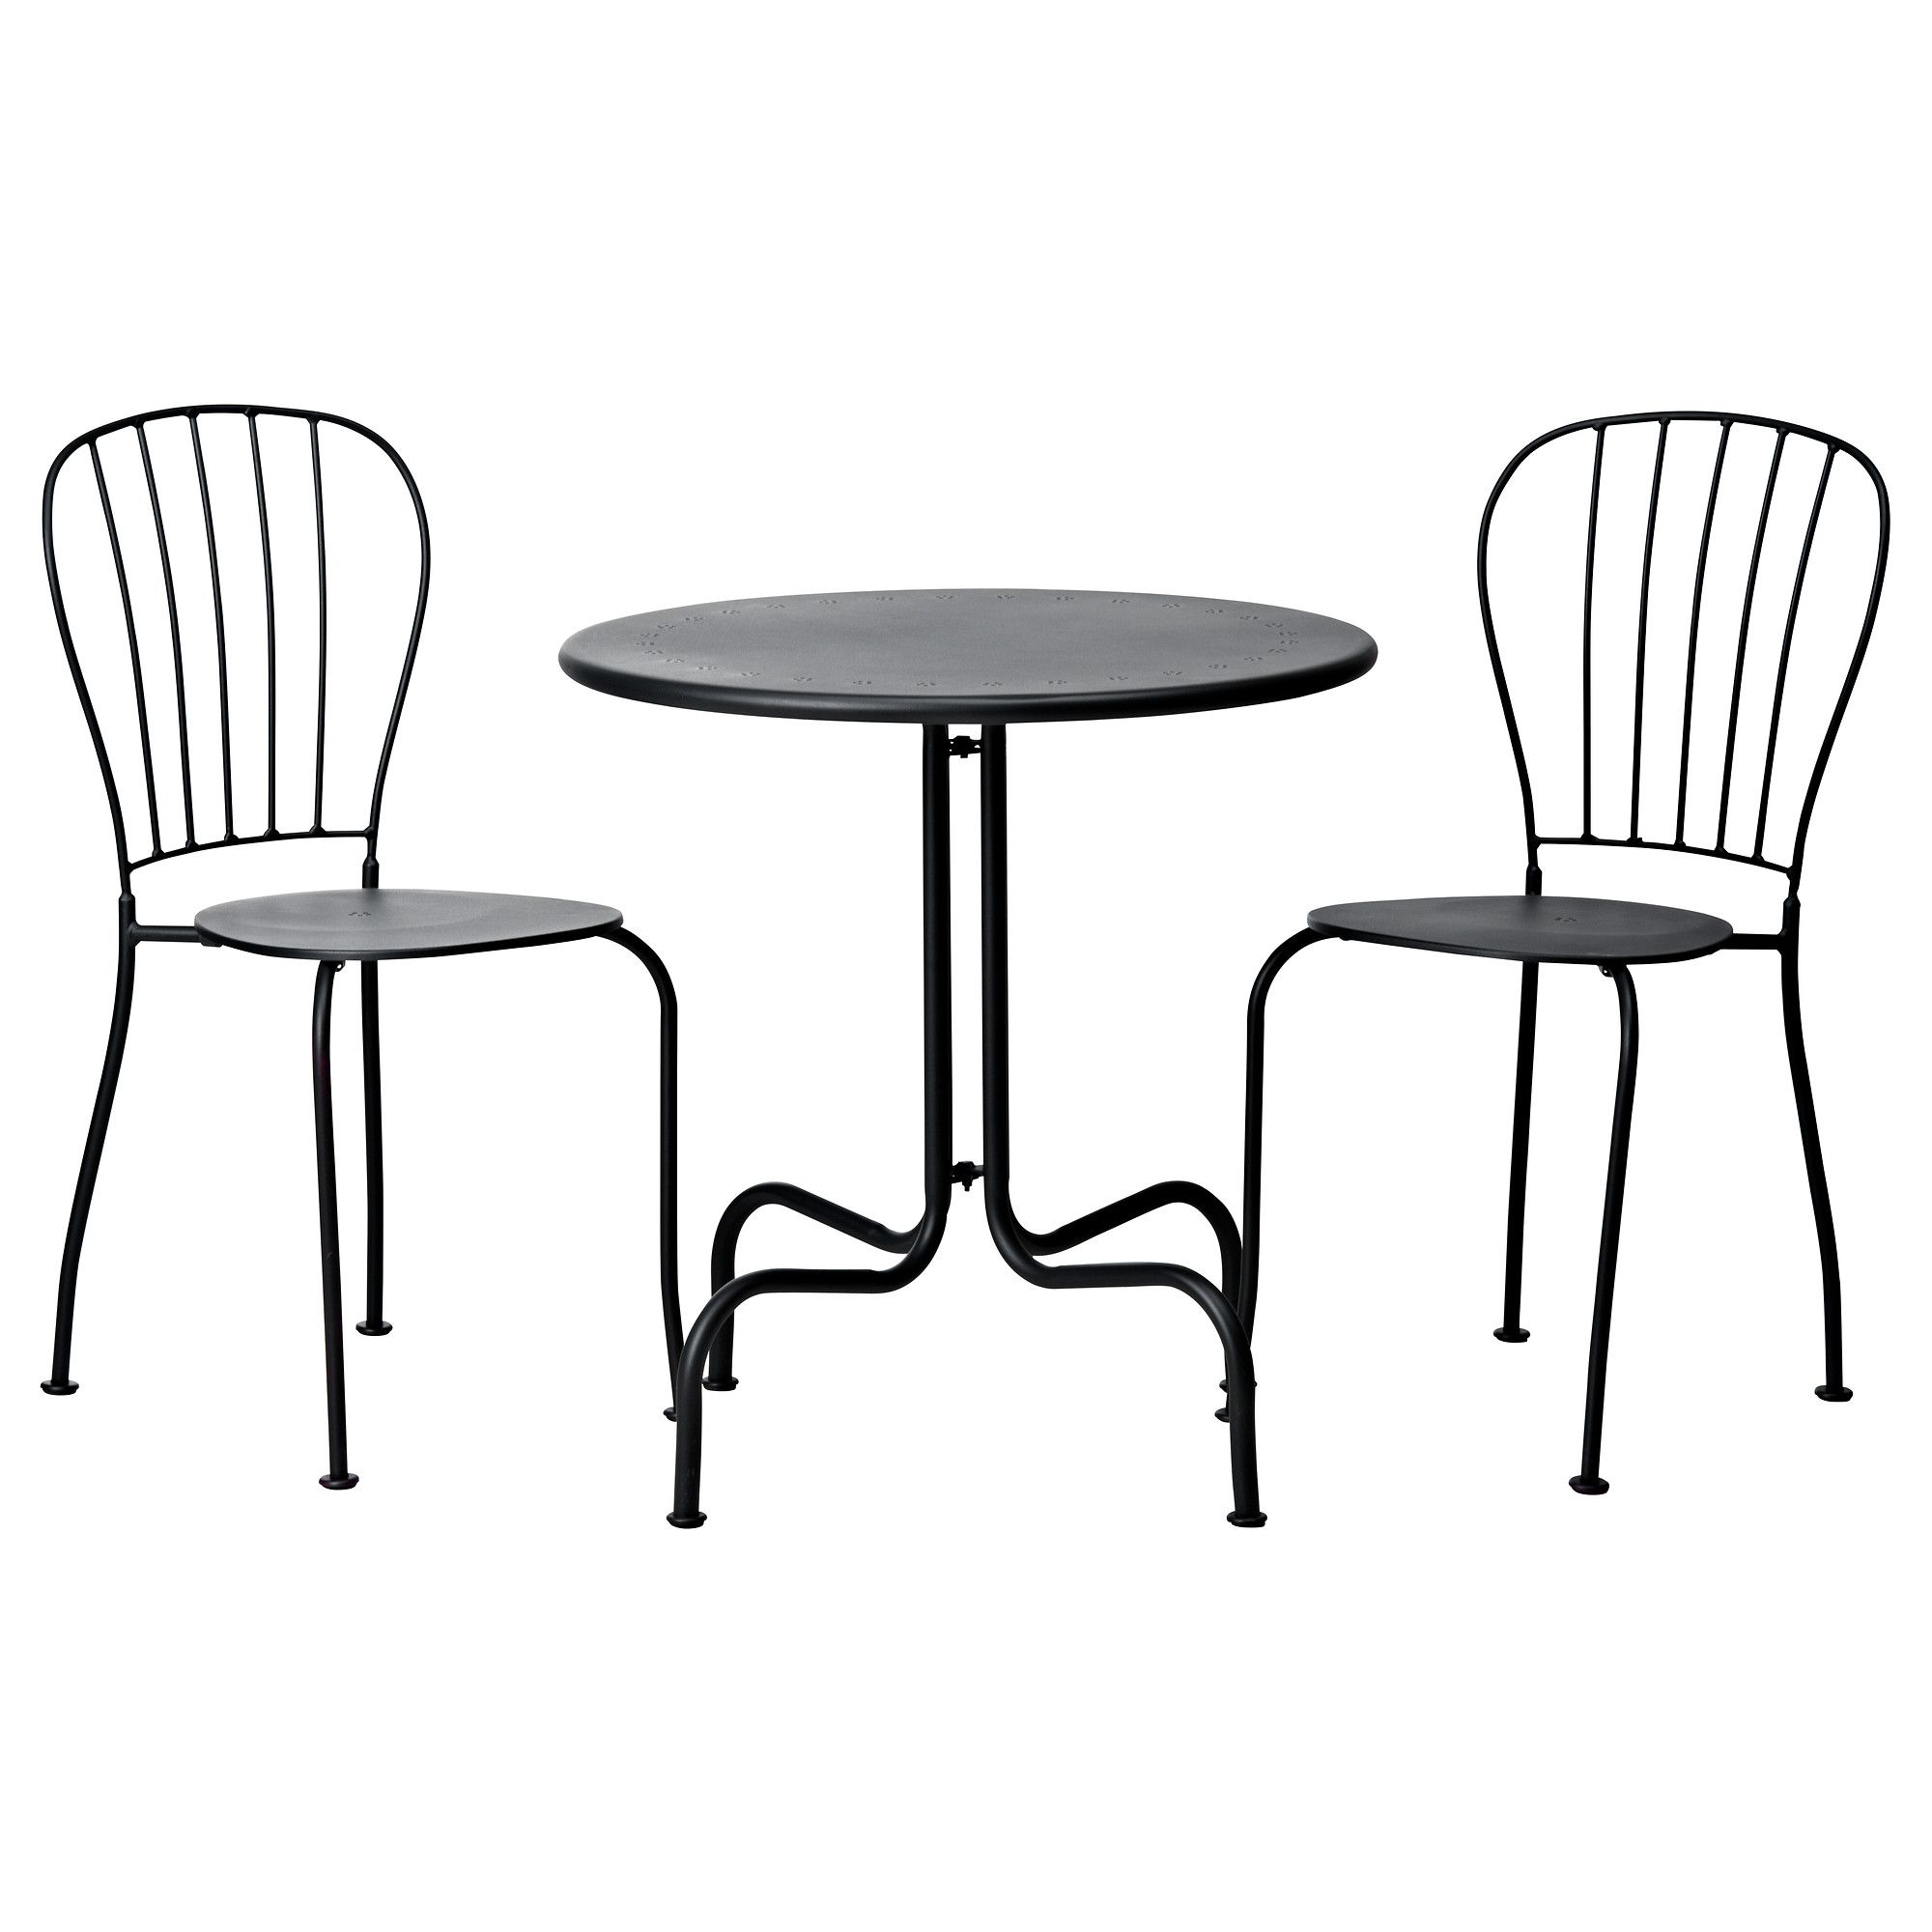 Lacko Table 2 Chairs Outdoor Gray